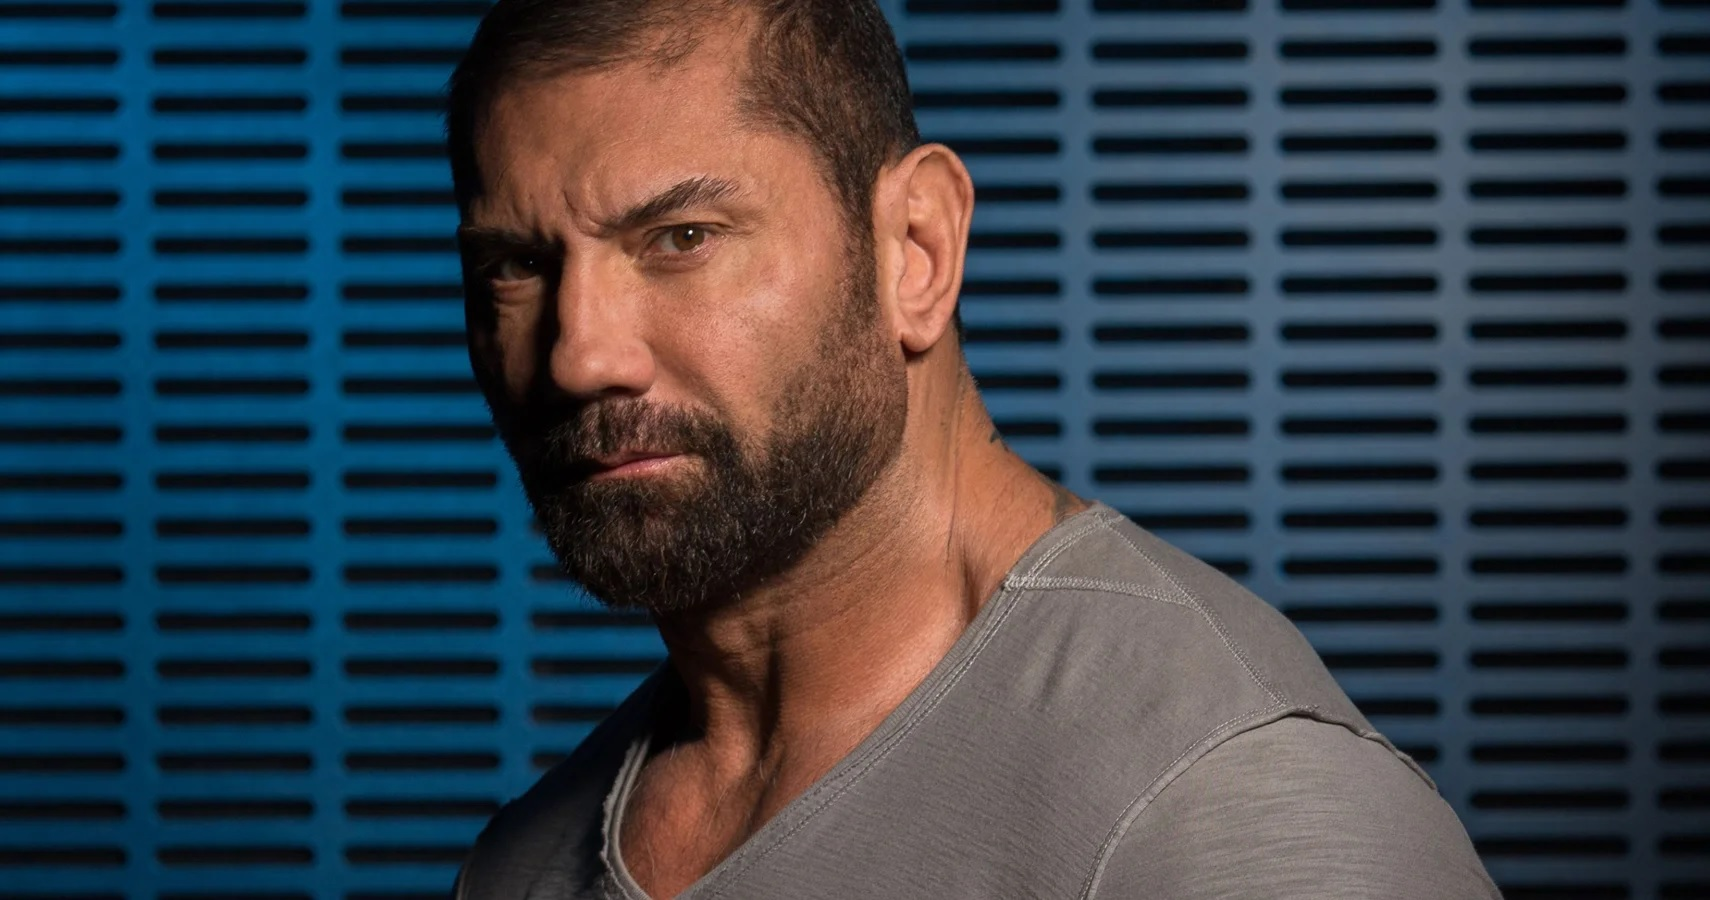 Dave Bautista will be playable in Gears 5 screenshot